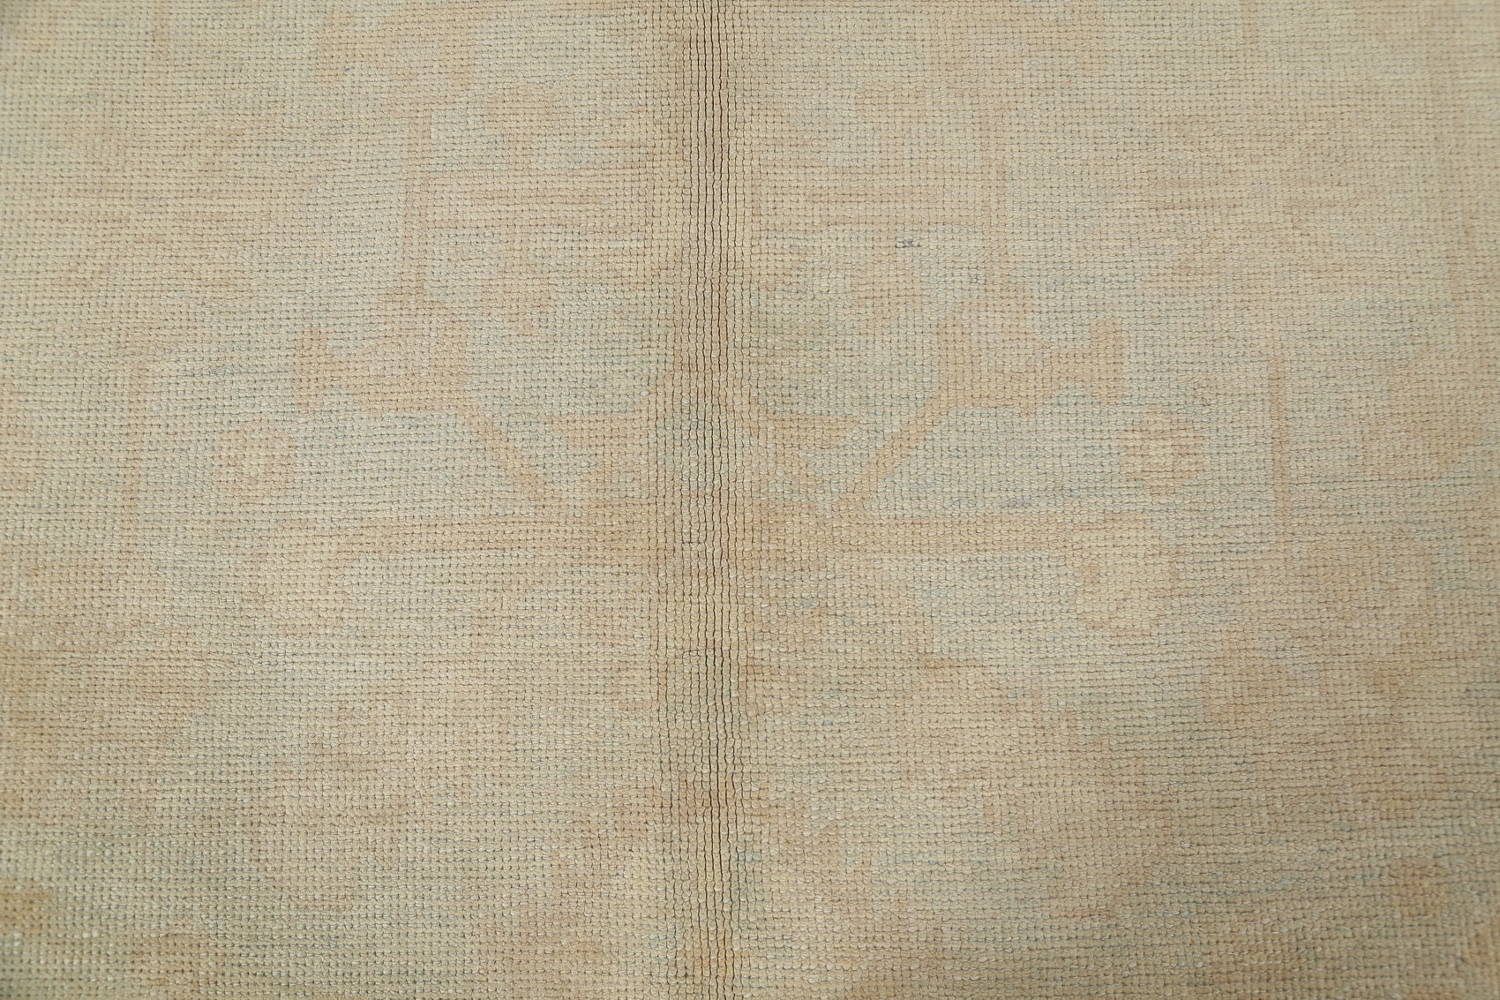 Vegetable Dye Muted Pale Blue Oushak Turkish Hand-Knotted Runner Rug 7x17 image 9